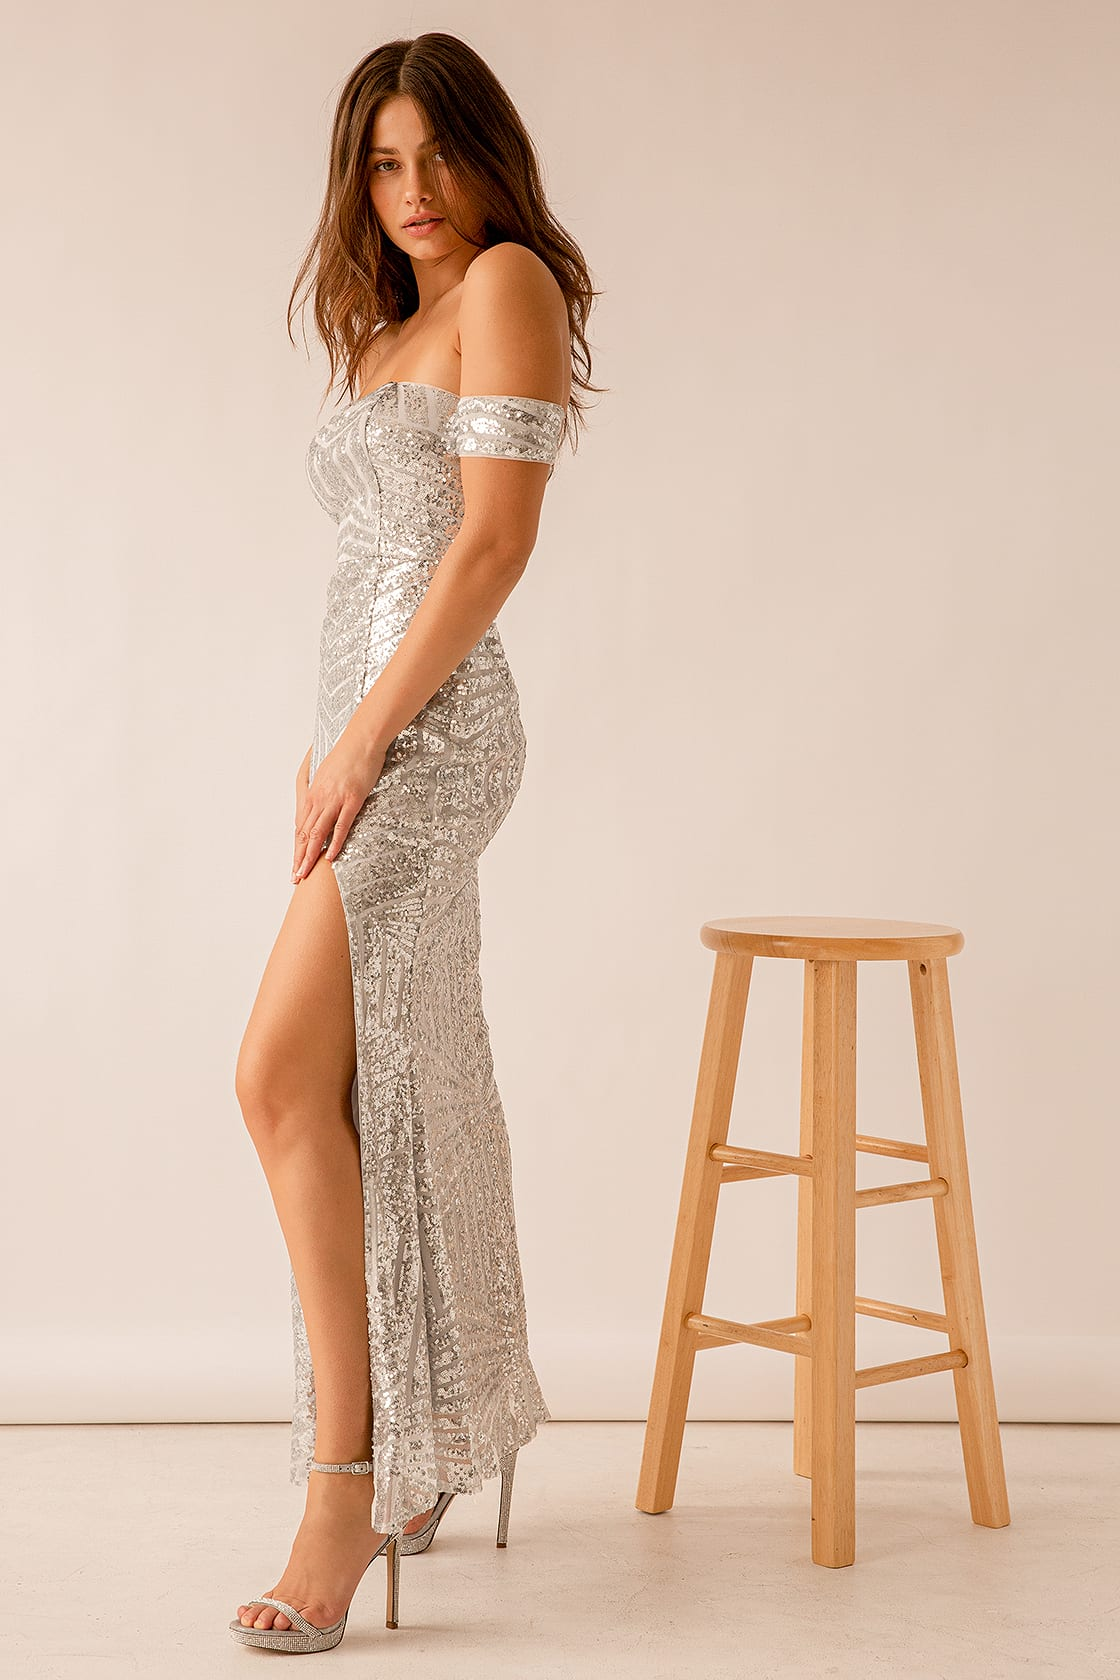 You and Me Silver Sequin Off-the-Shoulder Mermaid Maxi Dress